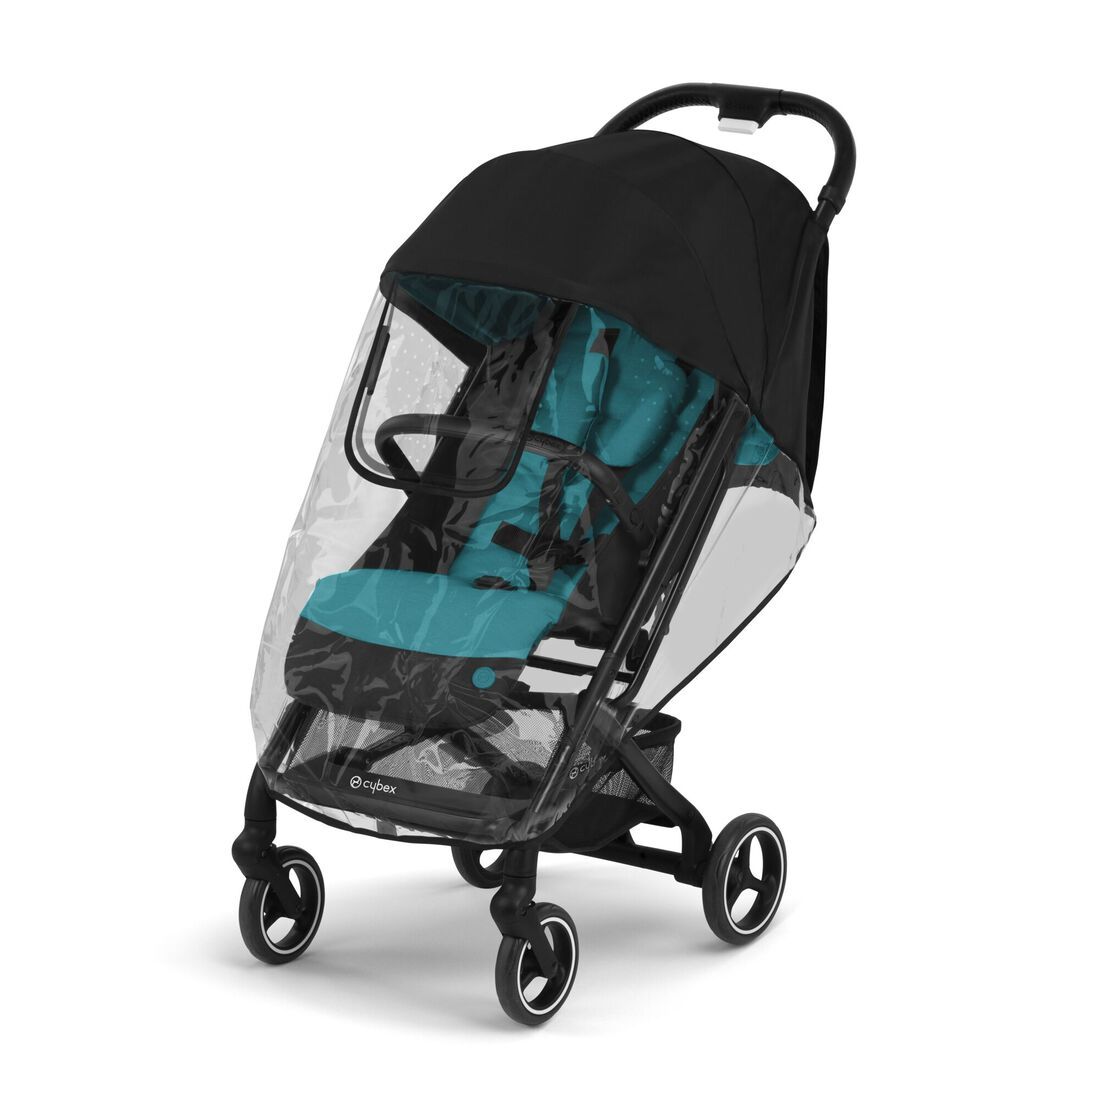 CYBEX Rain Cover Beezy - Transparent in Transparent large image number 1